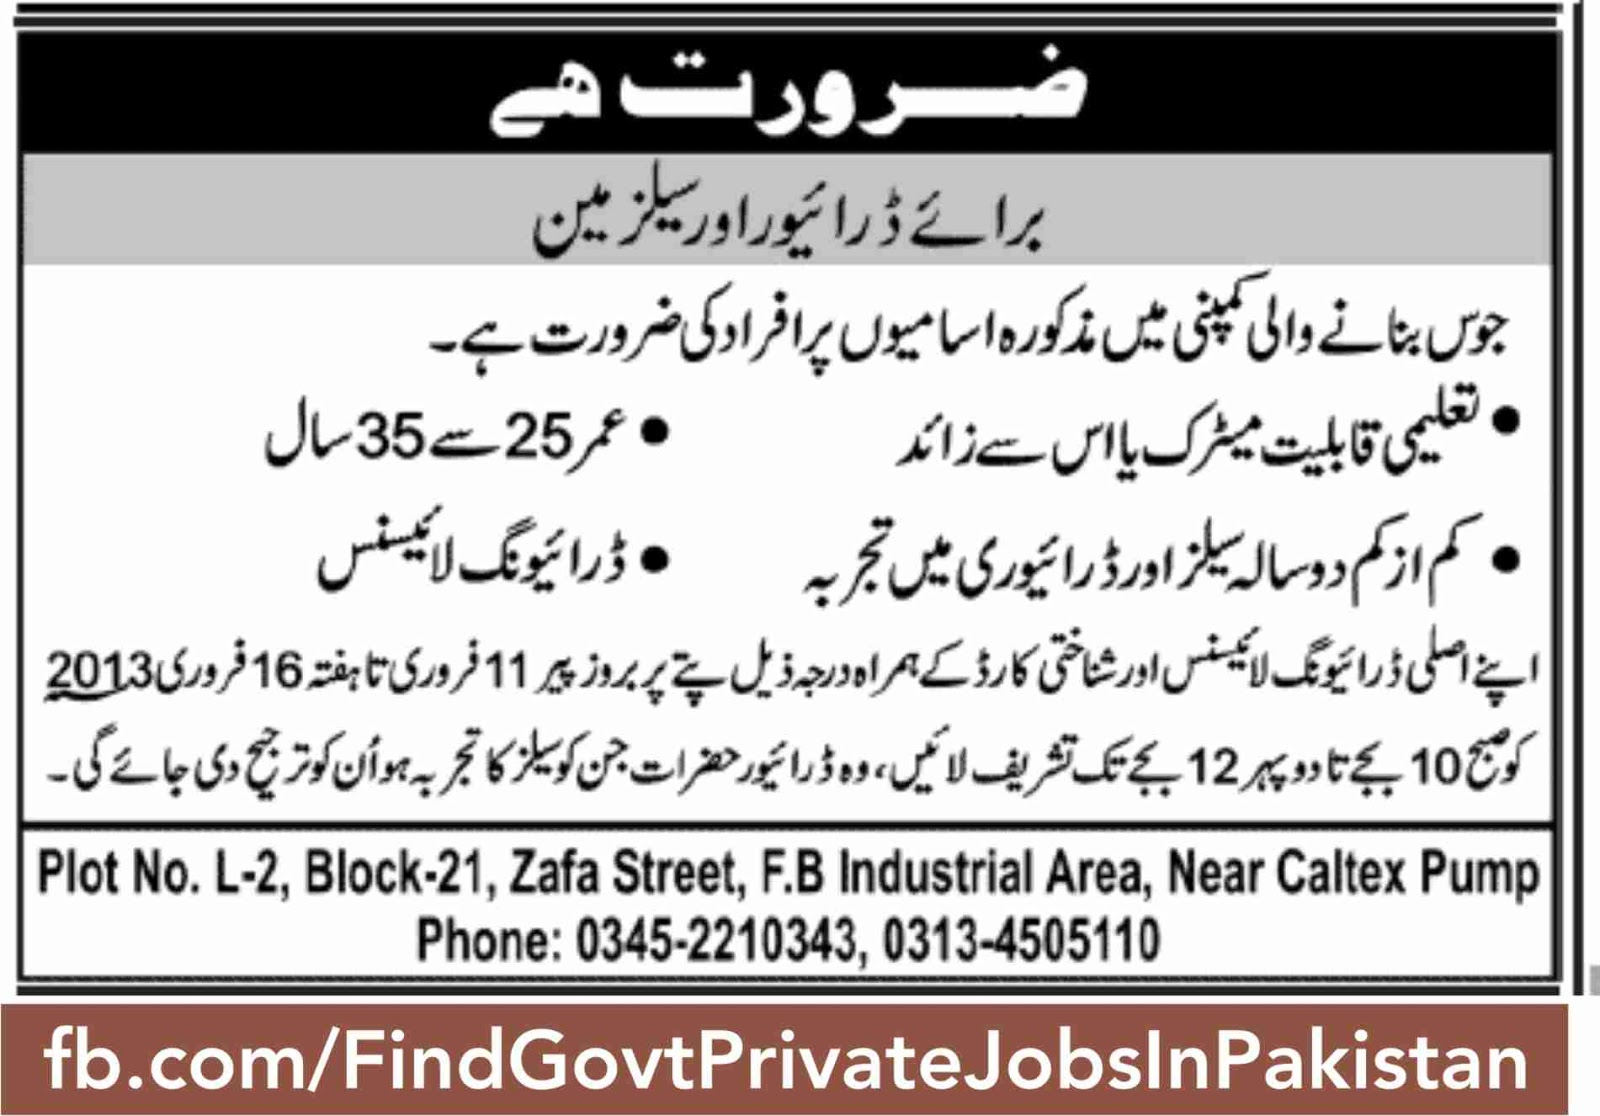 sunda jang job opportunities